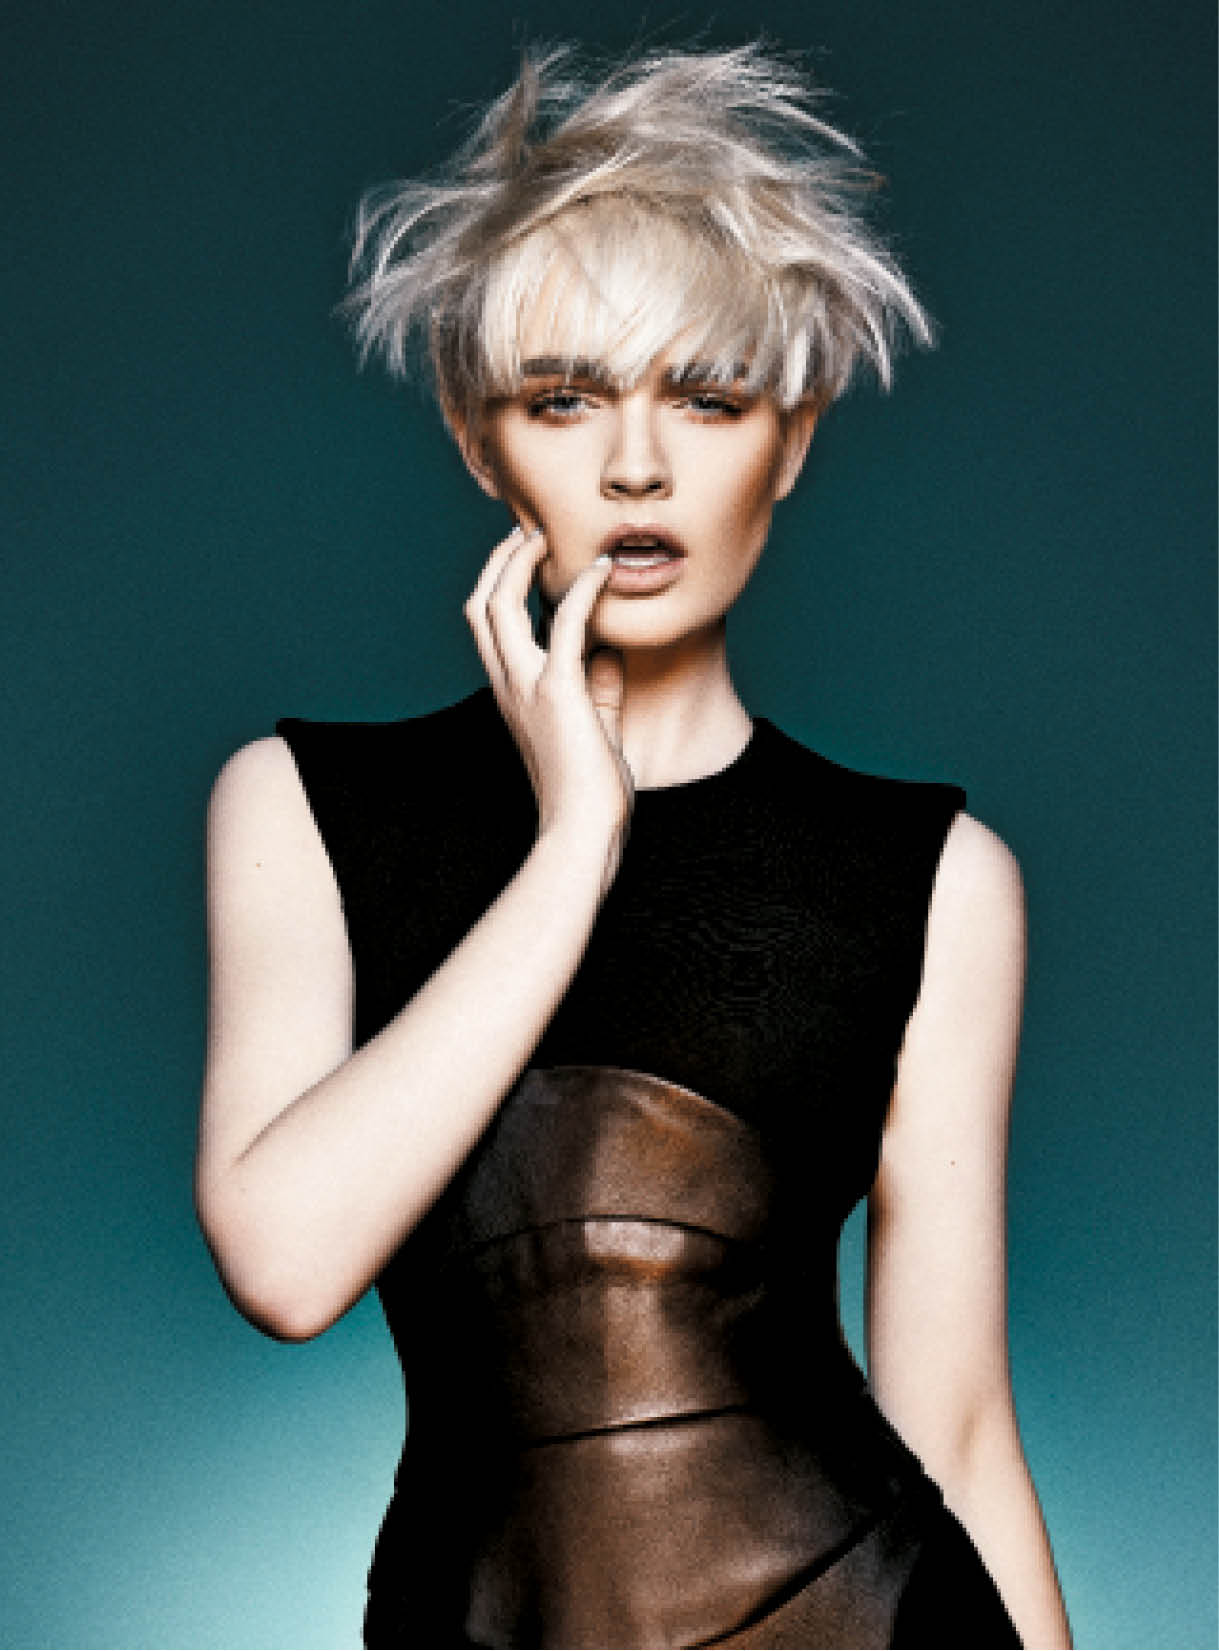 Neil Barton called on texture and a long fringe to make a strong style statement.